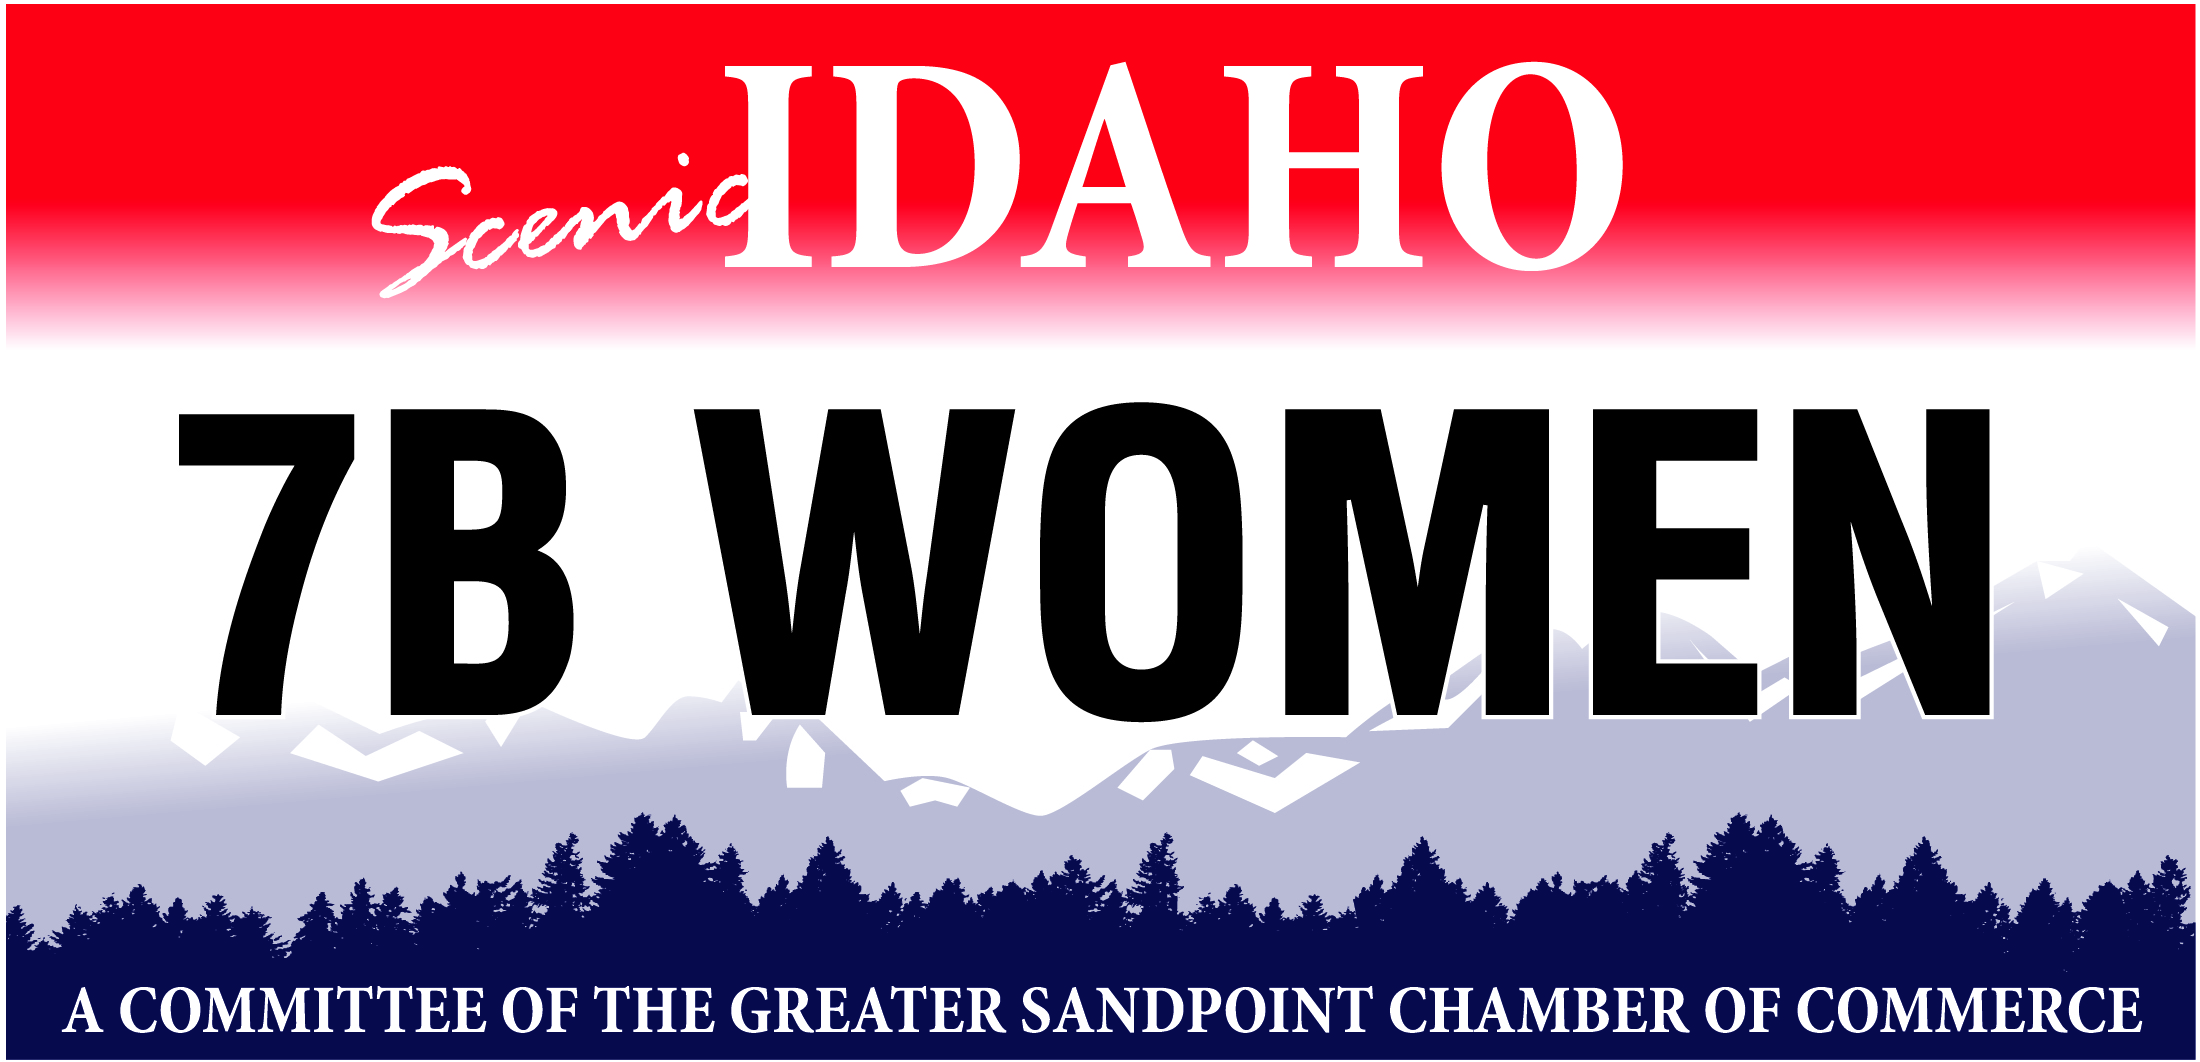 sandpoint women Find women's issues therapists, psychologists and women's issues counseling in sandpoint, bonner county, idaho, get help for women's issues in sandpoint.